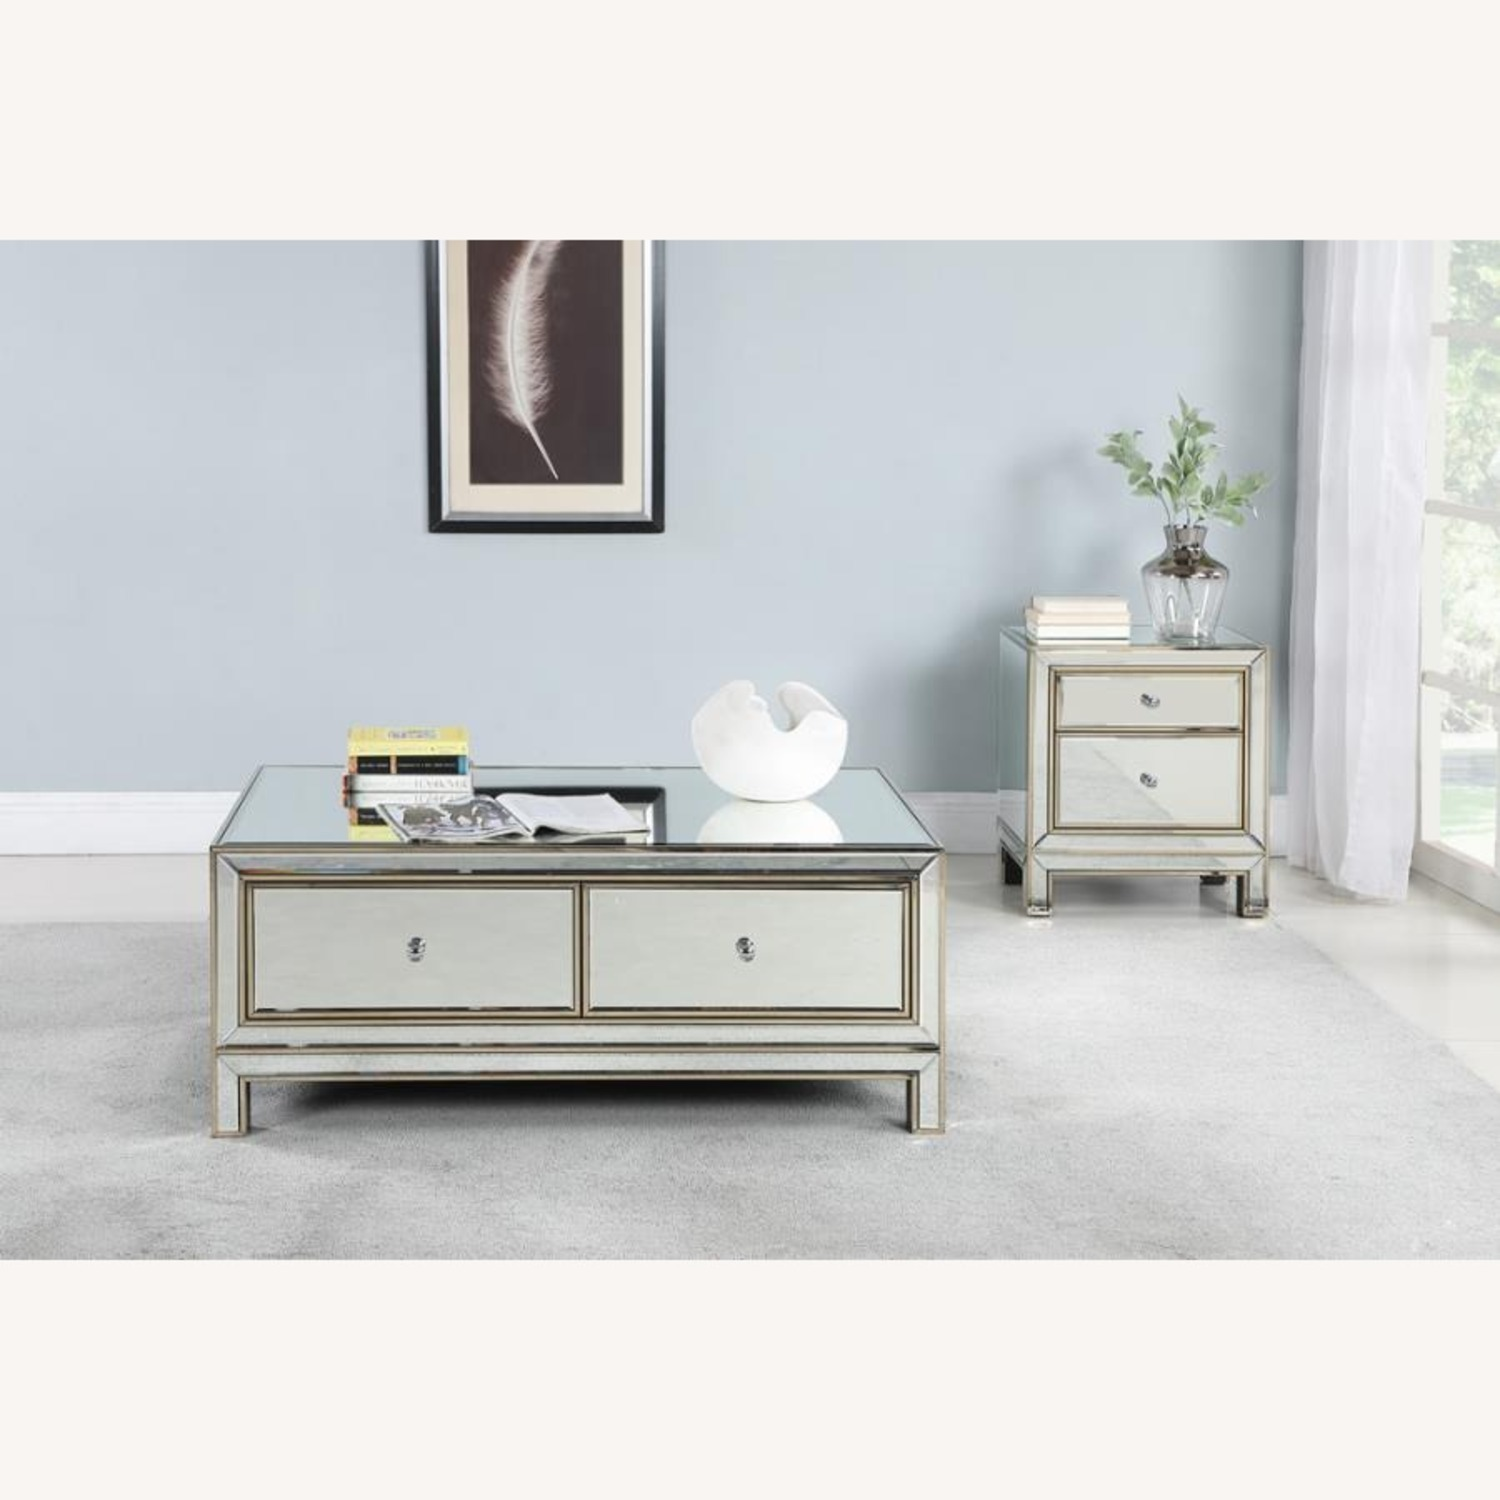 End Table In Silver & Champagne Finish - image-2